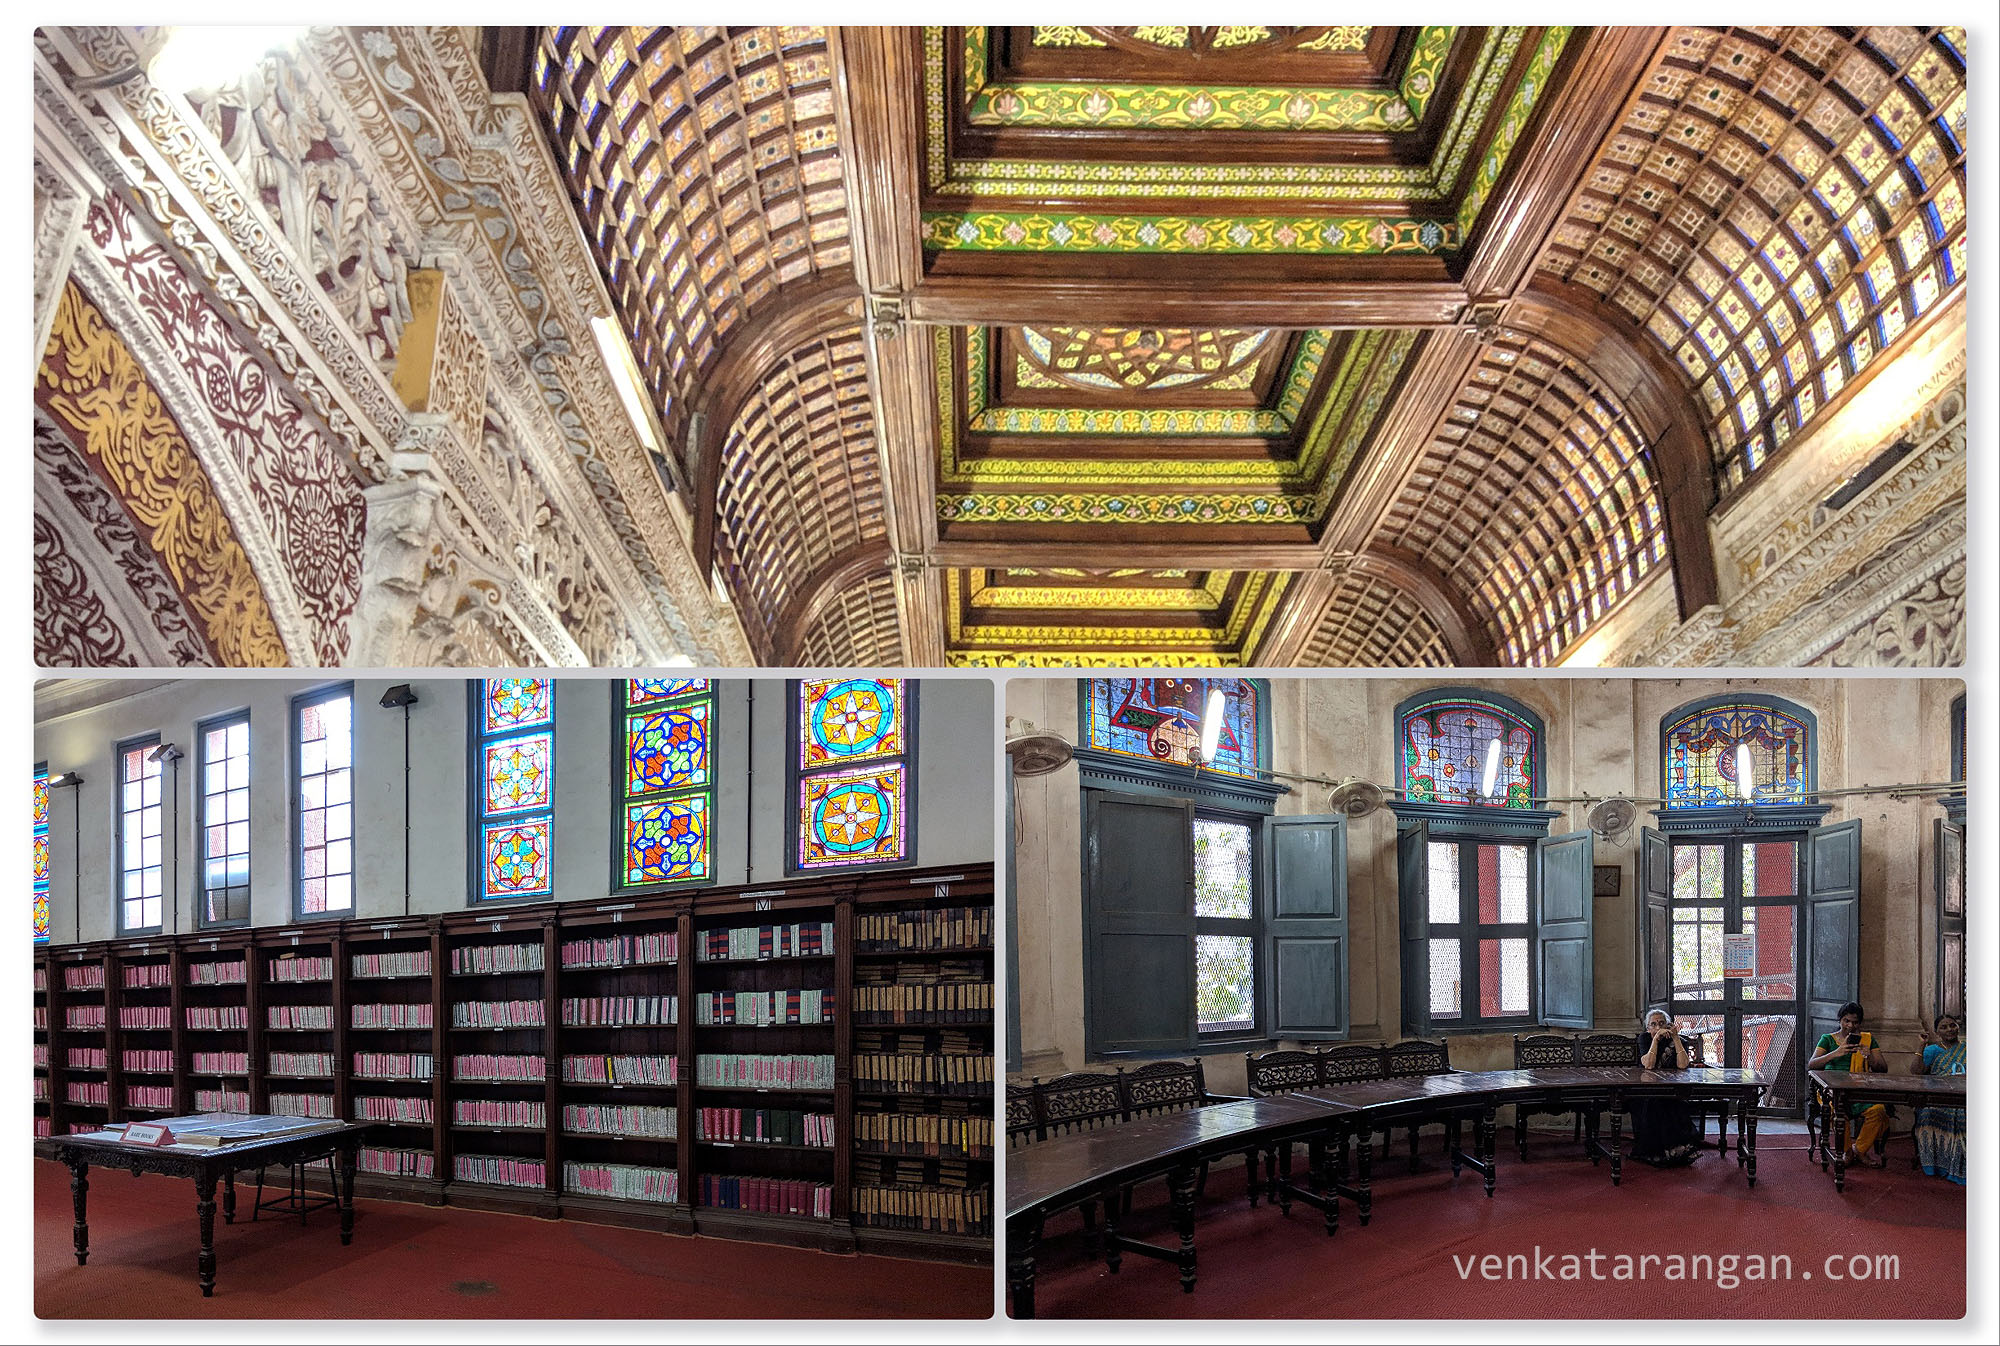 The semi-circular roof, the stained glasses on the walls, and the circular reading room are a visual treat just to see. I would love to be locked up here and the key to be thrown out! Even during the peak Madras Summer, the halls were not hot!